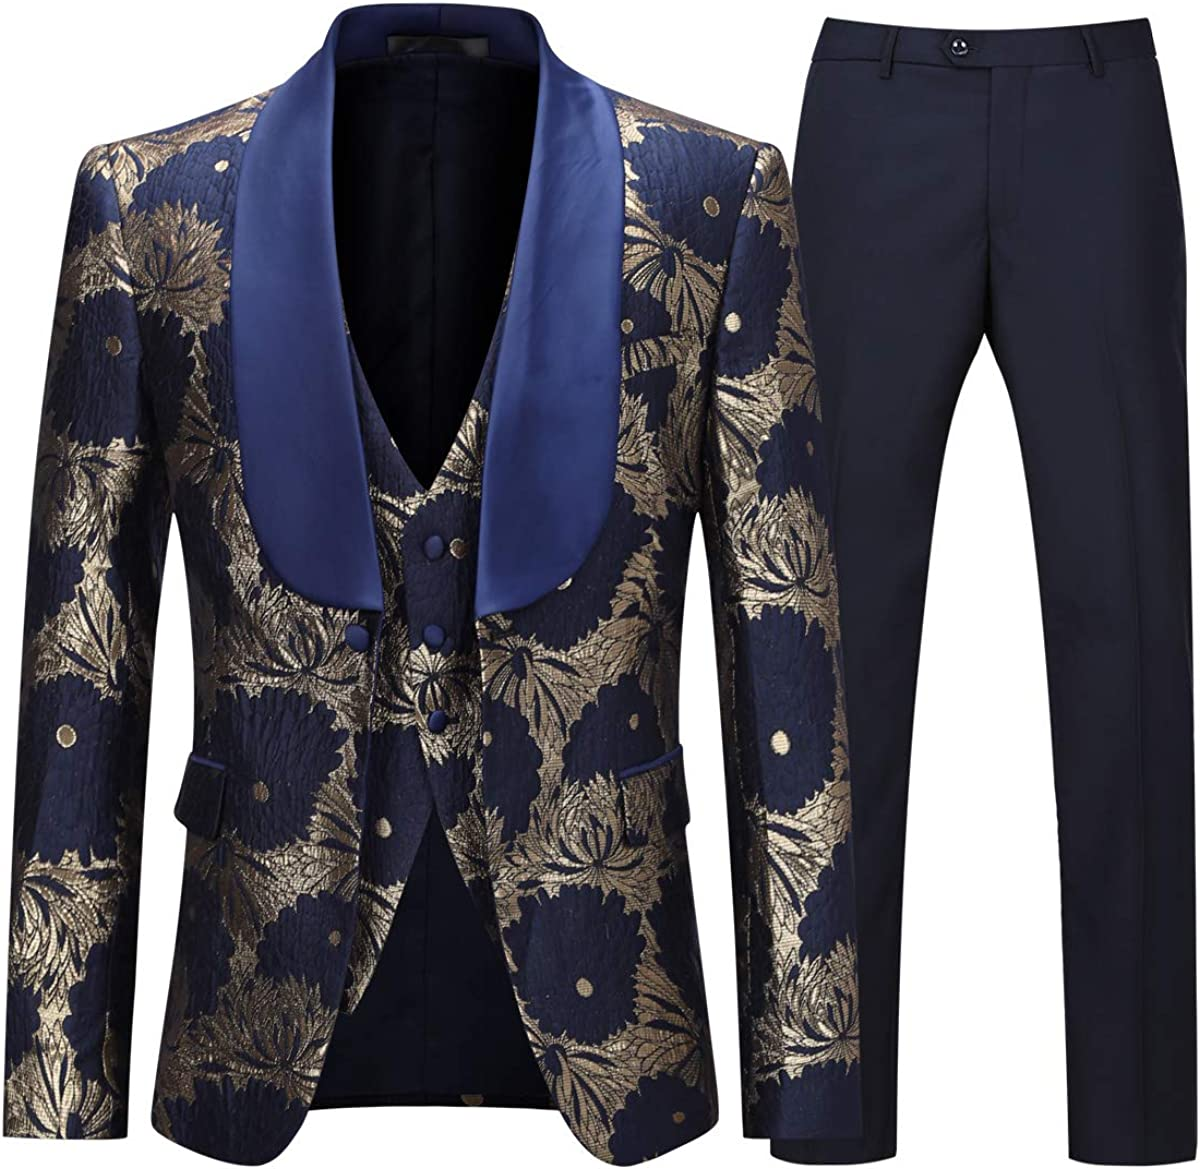 Boyland Boys Tuxedo Suit Floral Shawl Lapel Slim Fit Elegant Blue Suit Set